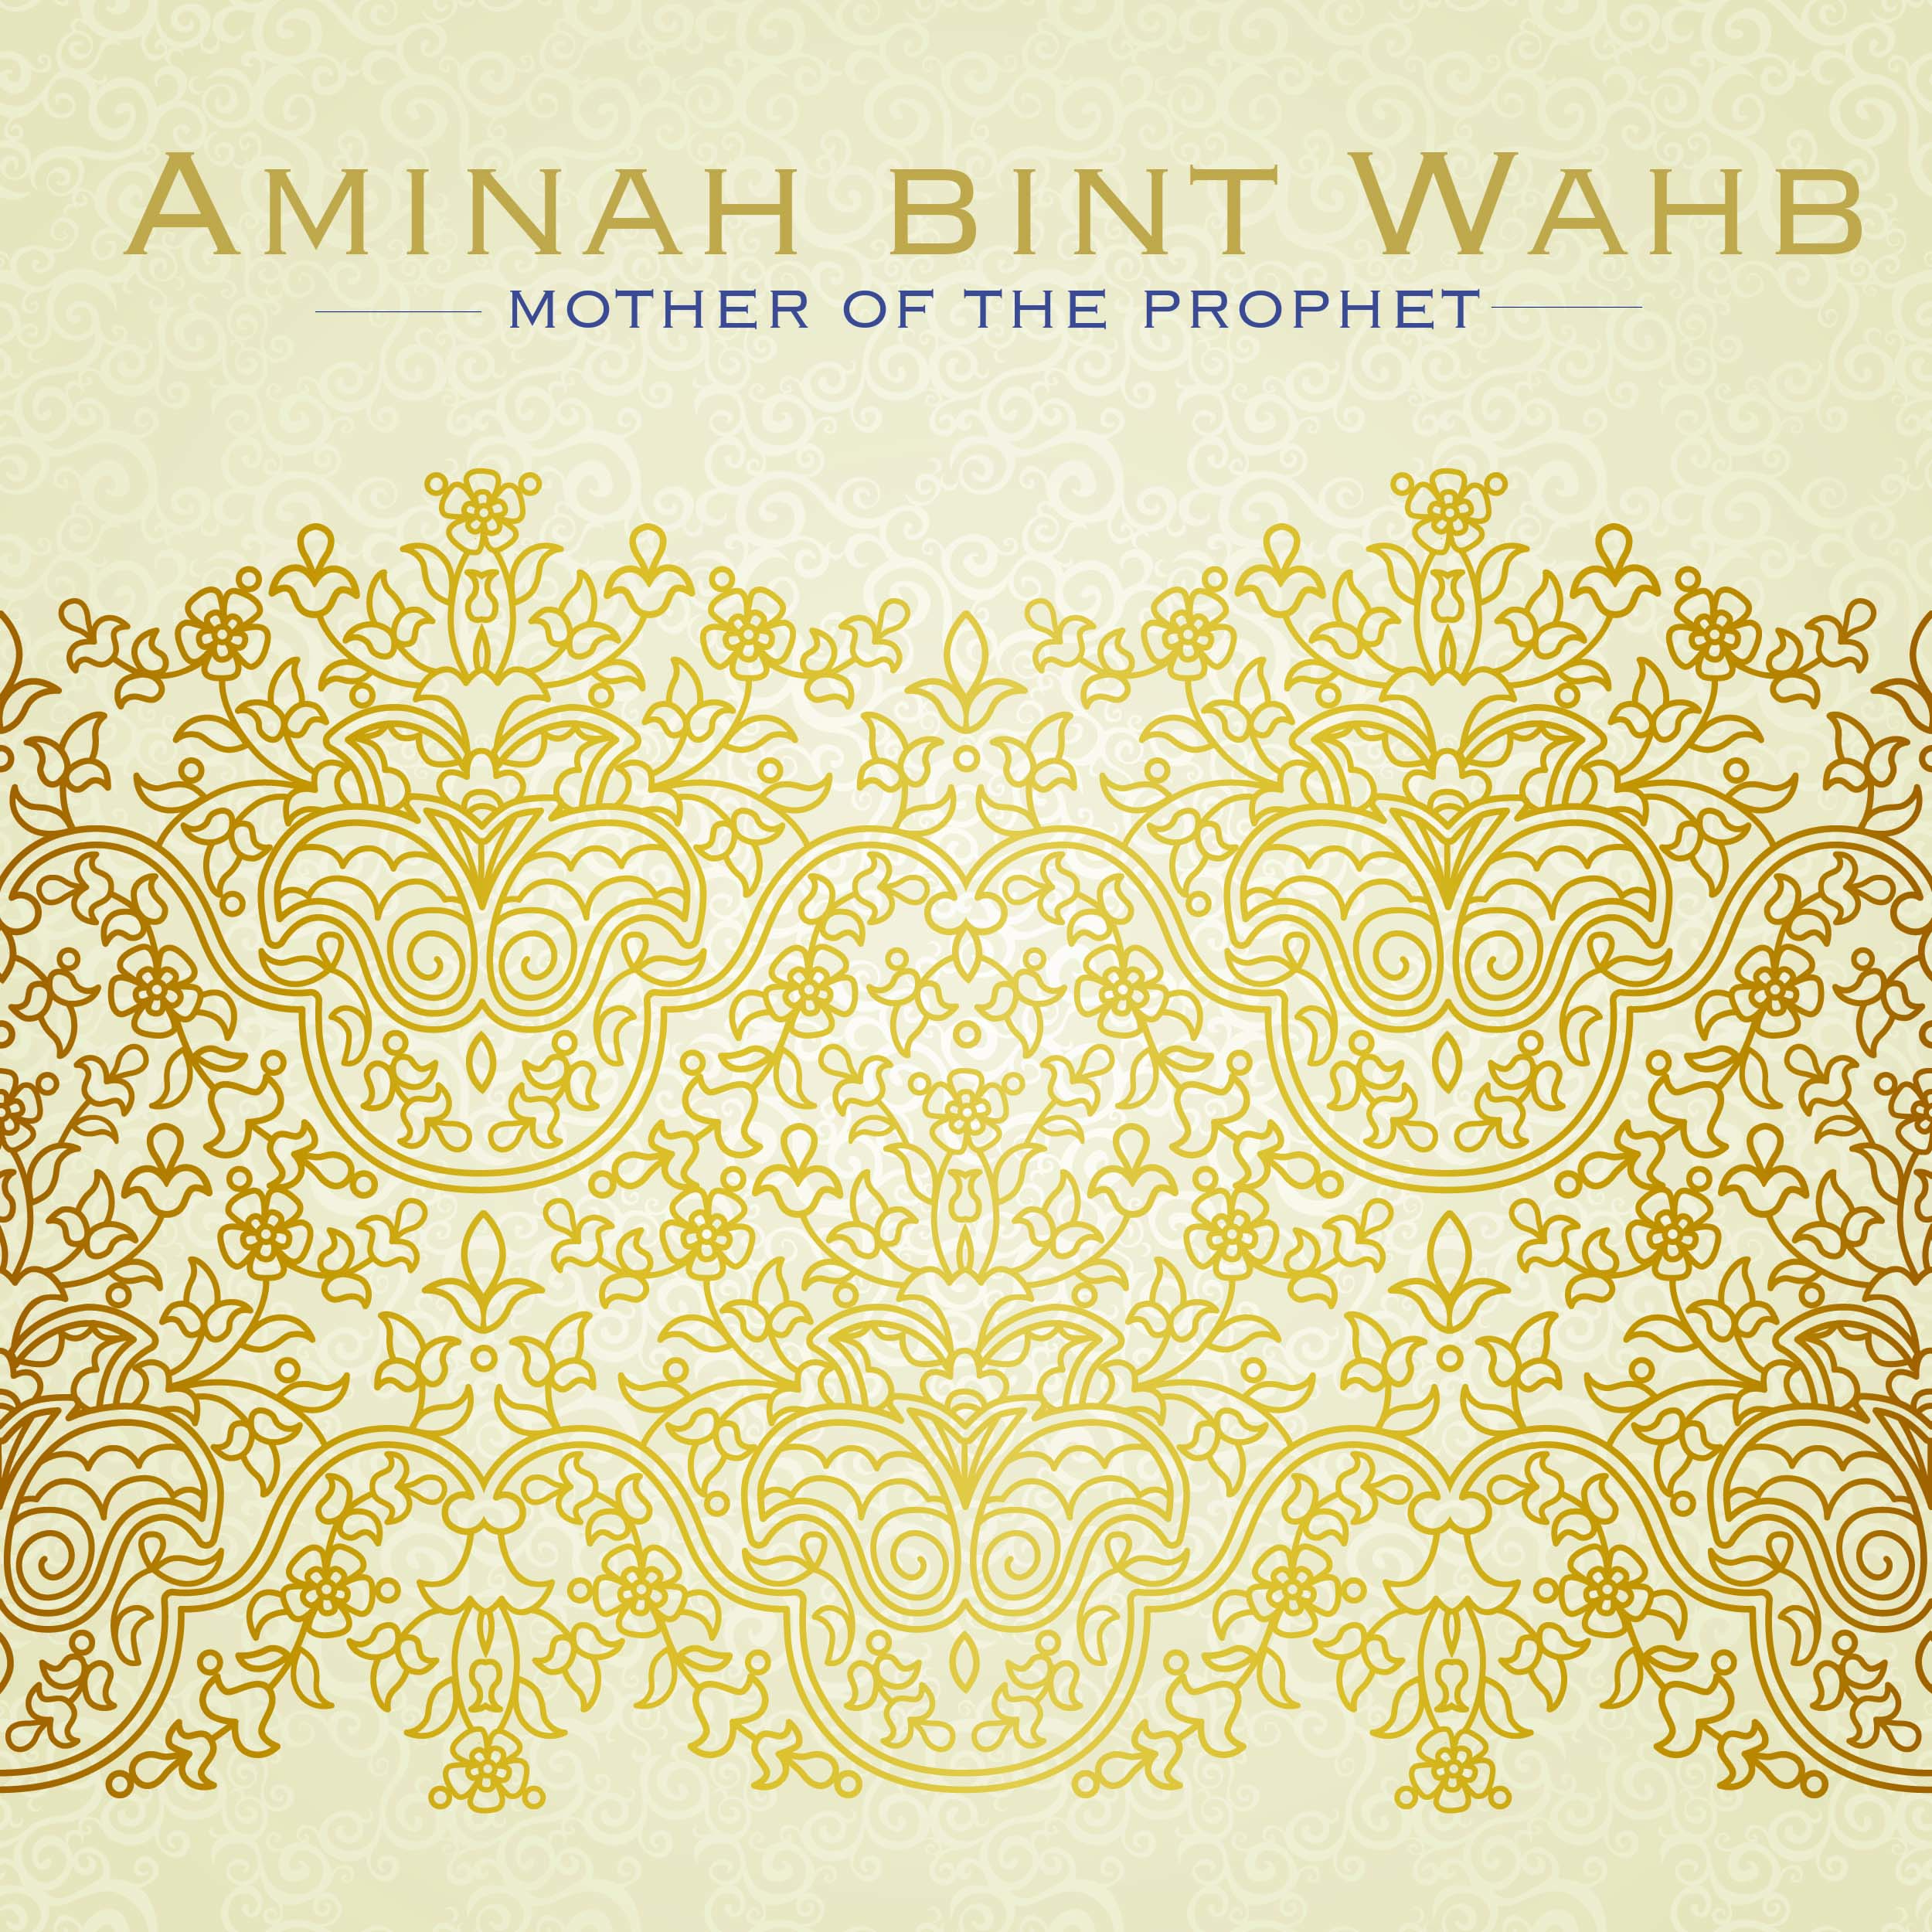 [Then] Aminah bint Wahb- Mother of the Prophet